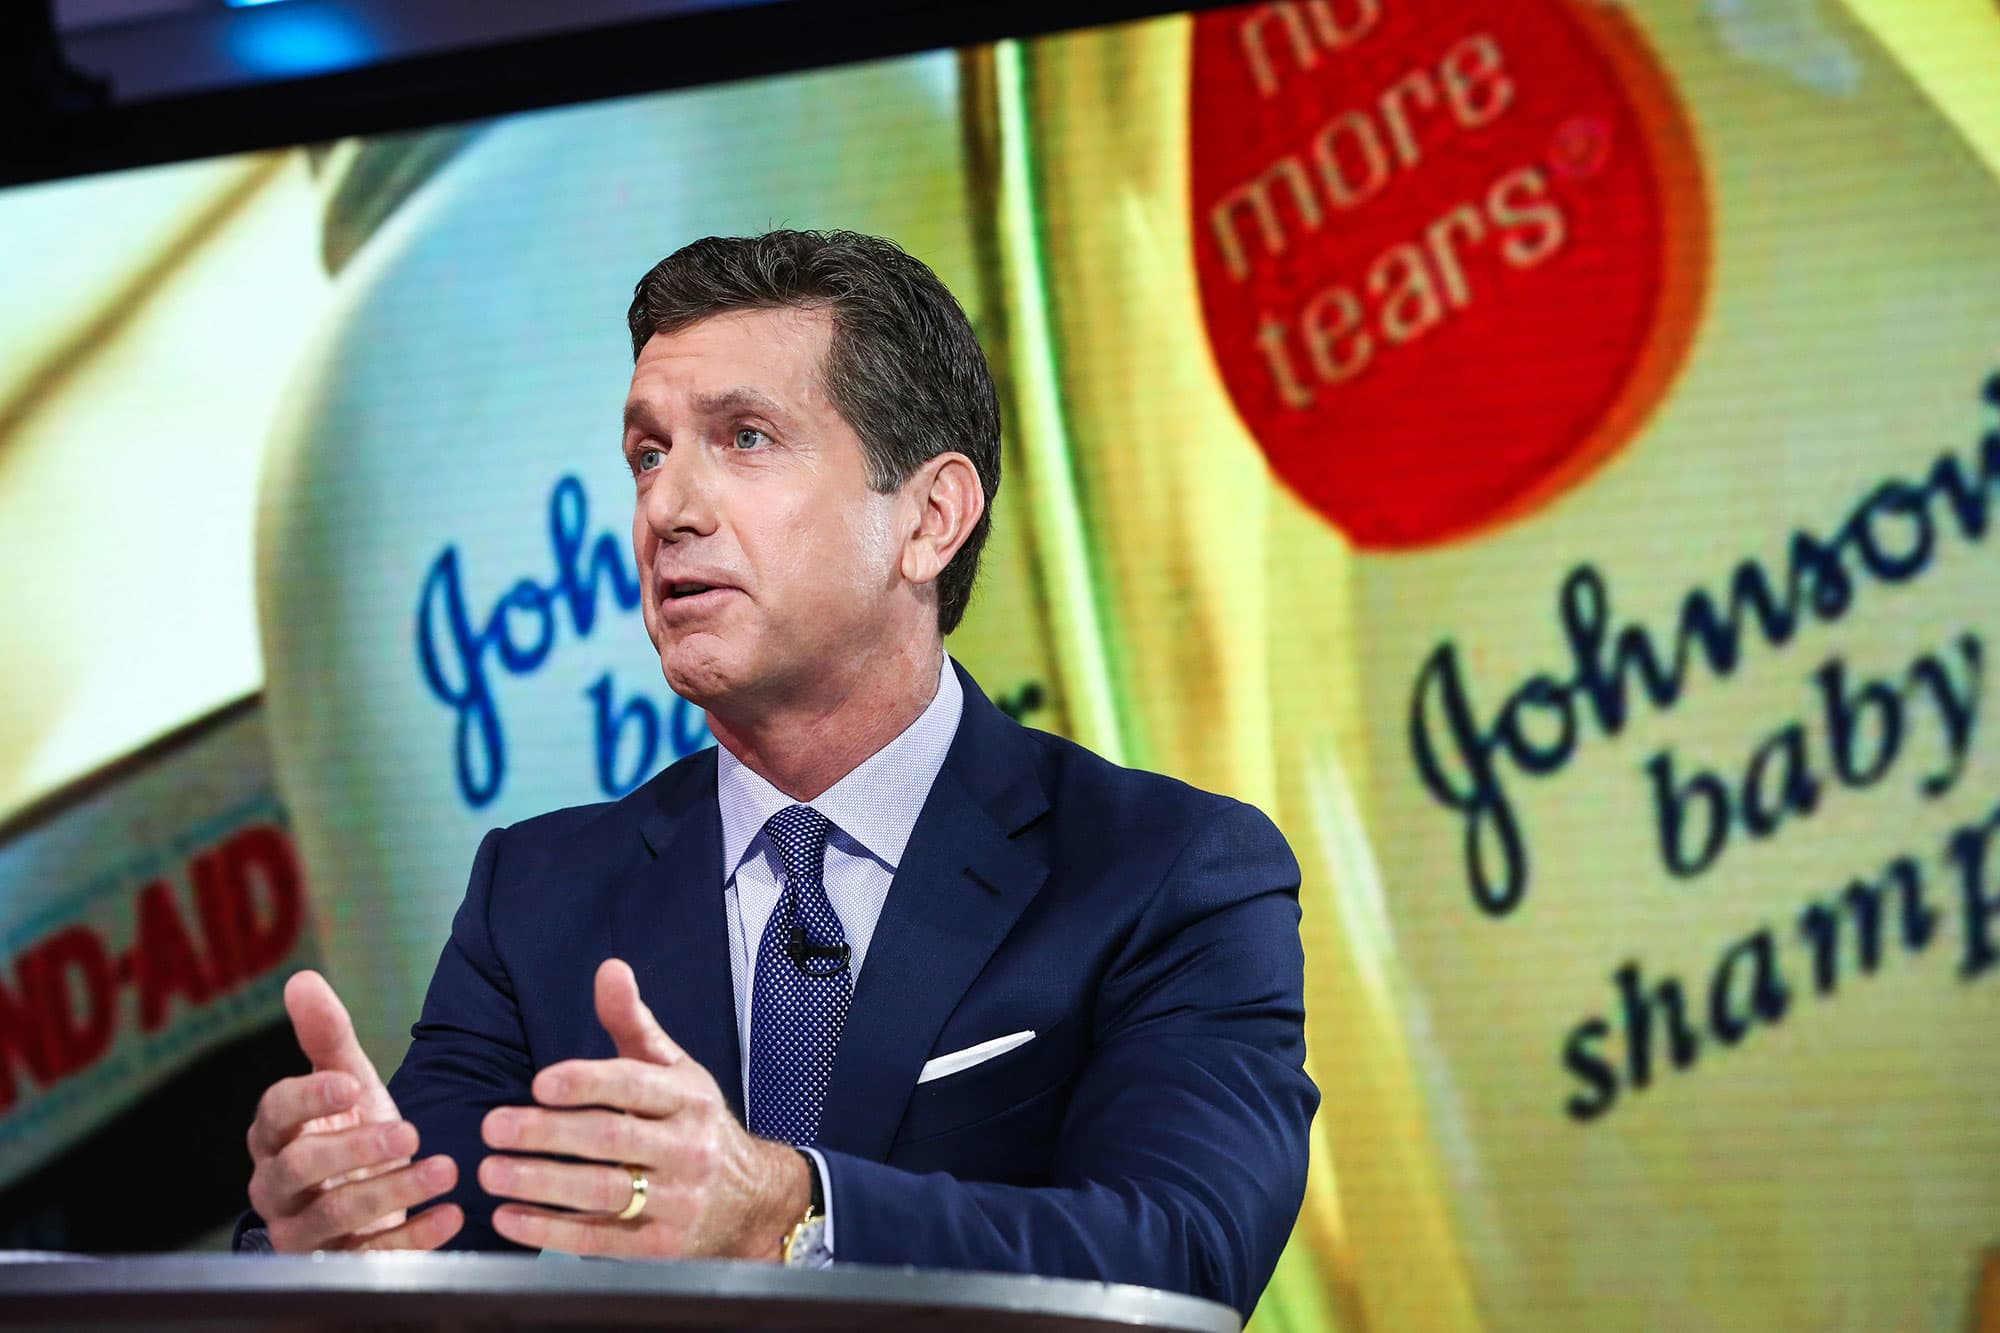 Johnson & Johnson CEO defends drug prices, calls for changes in how medical costs are covered